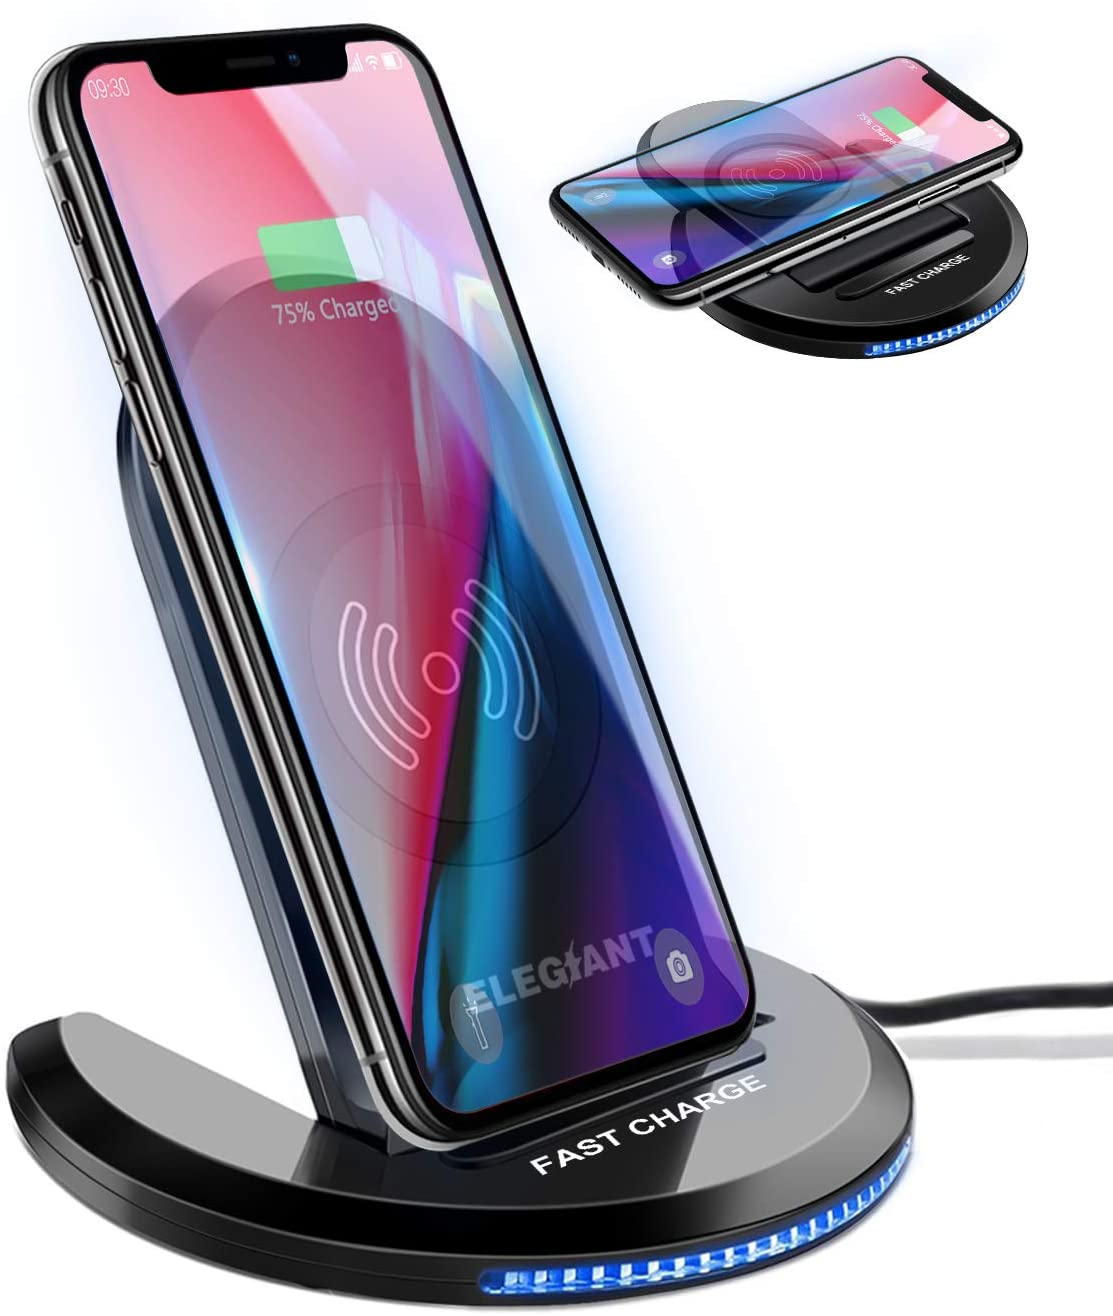 ELEGIANT Wireless Charger, 15W/10W/7.5W Qi Wireless Charging Stand 0 to 90 Degrees Adjustable Compatible with iPhone 11/11 Pro Max/XR/XS MAX/XS/X/8/8 Plus, Galaxy S20/S10/S9/S8/S7 Edge/Note 10+/9/8